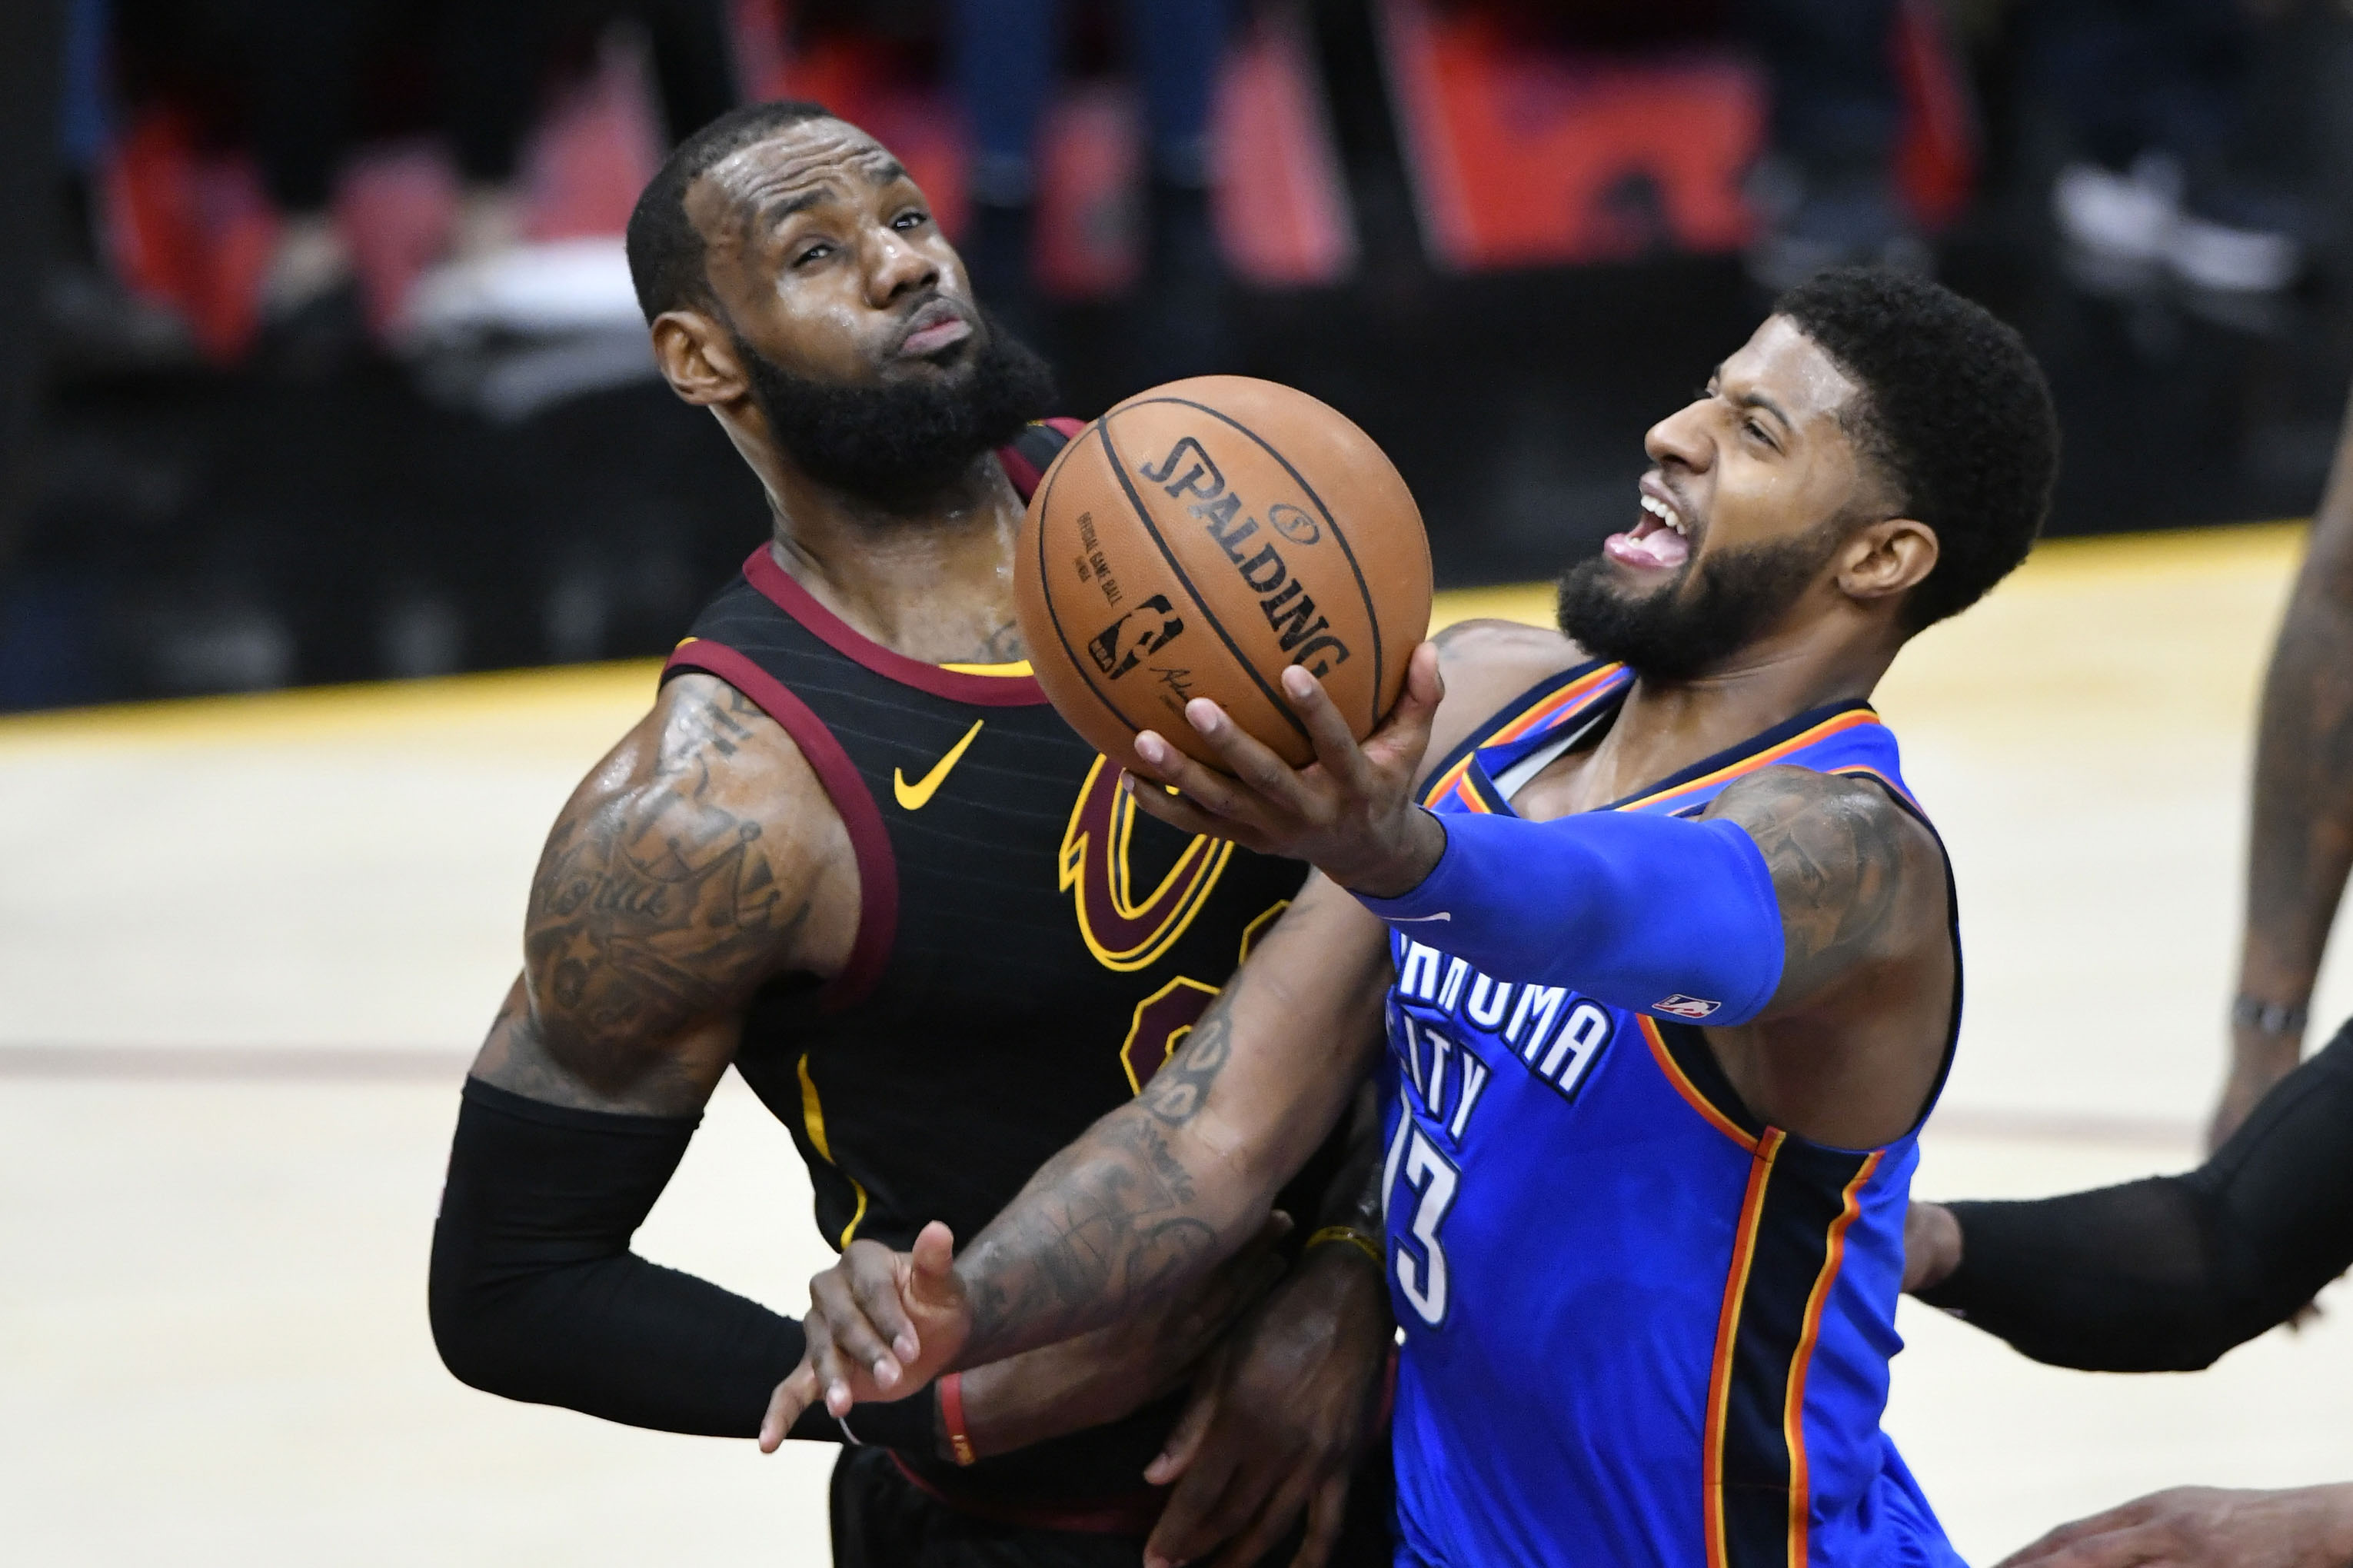 Basket - NBA - Oklahoma City passe 148 points à des Cavaliers sans défense